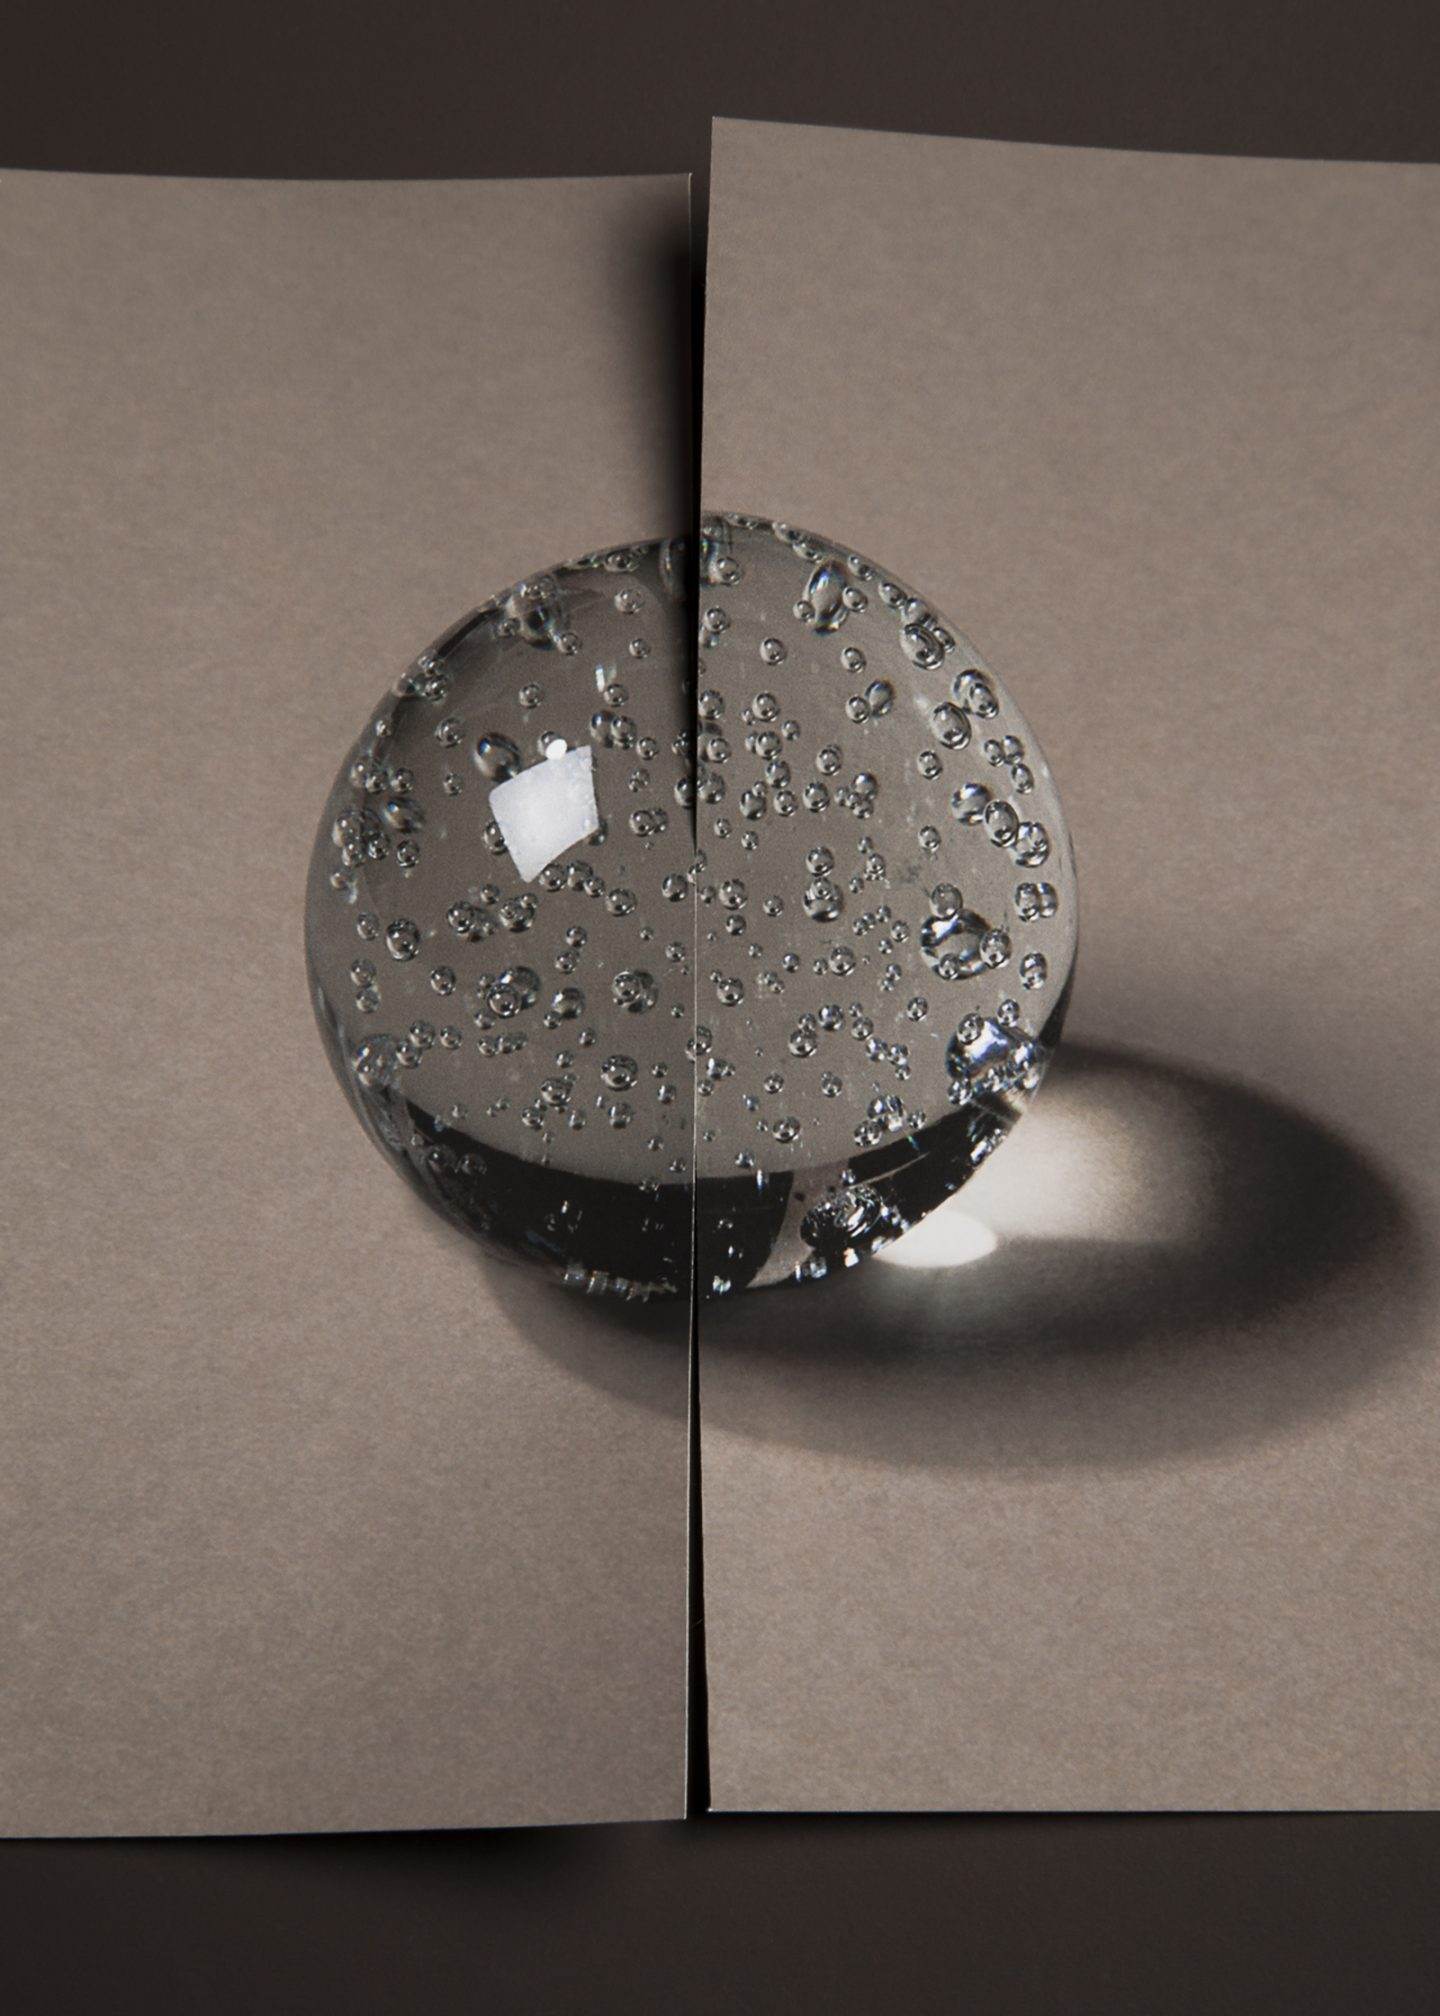 iGNANT-Photography-Delphine-Burton-Encouble-012